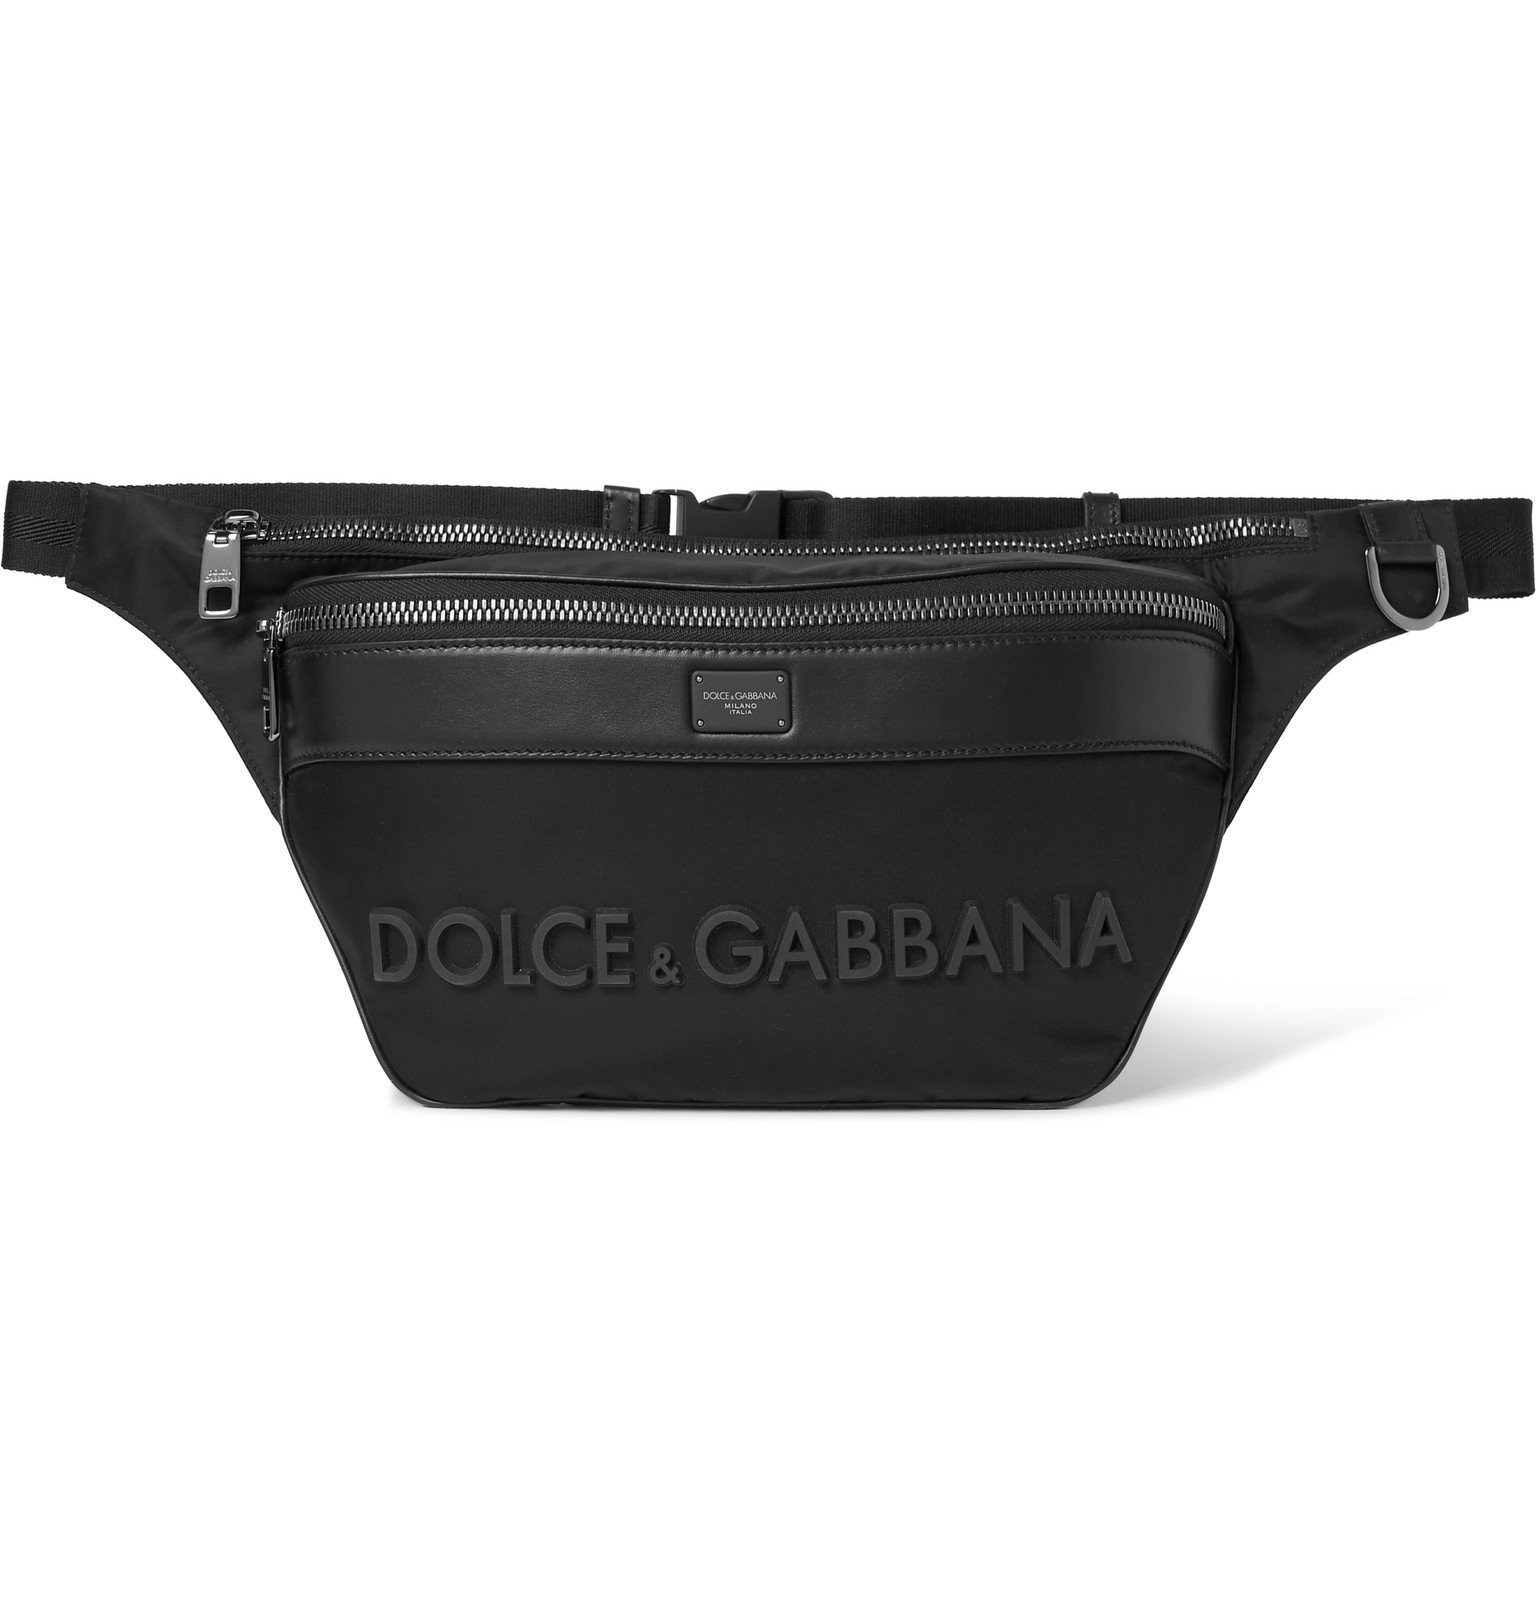 Dolce & Gabbana - Logo-Appliquéd Leather-Trimmed Shell Belt Bag - Black